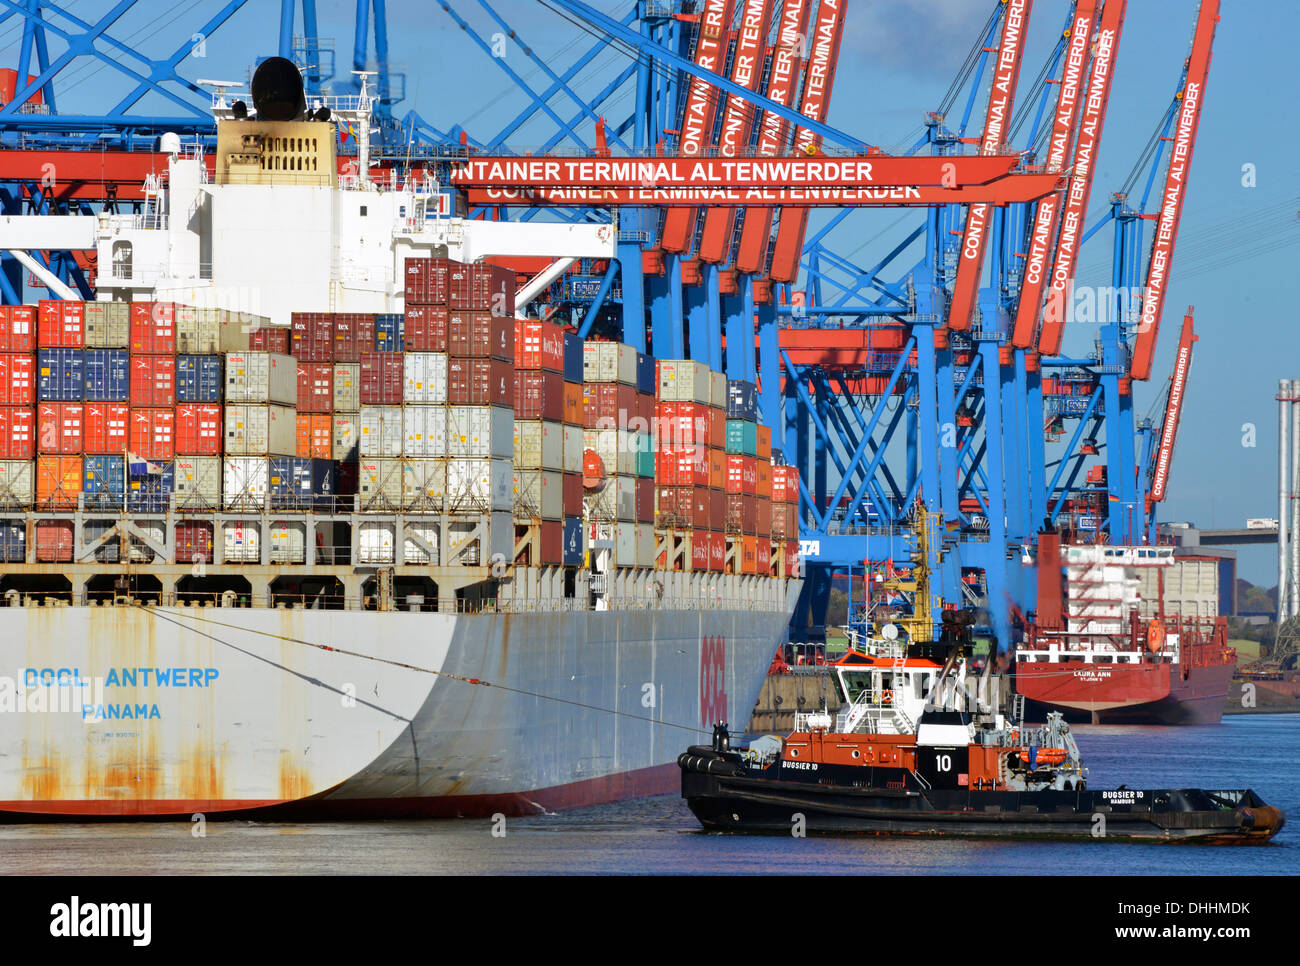 Container ship OOCL Antwerp of the OOLC shipping company with the tug Bugsier 10, Container Terminal Werder, Hamburg, Hamburg - Stock Image